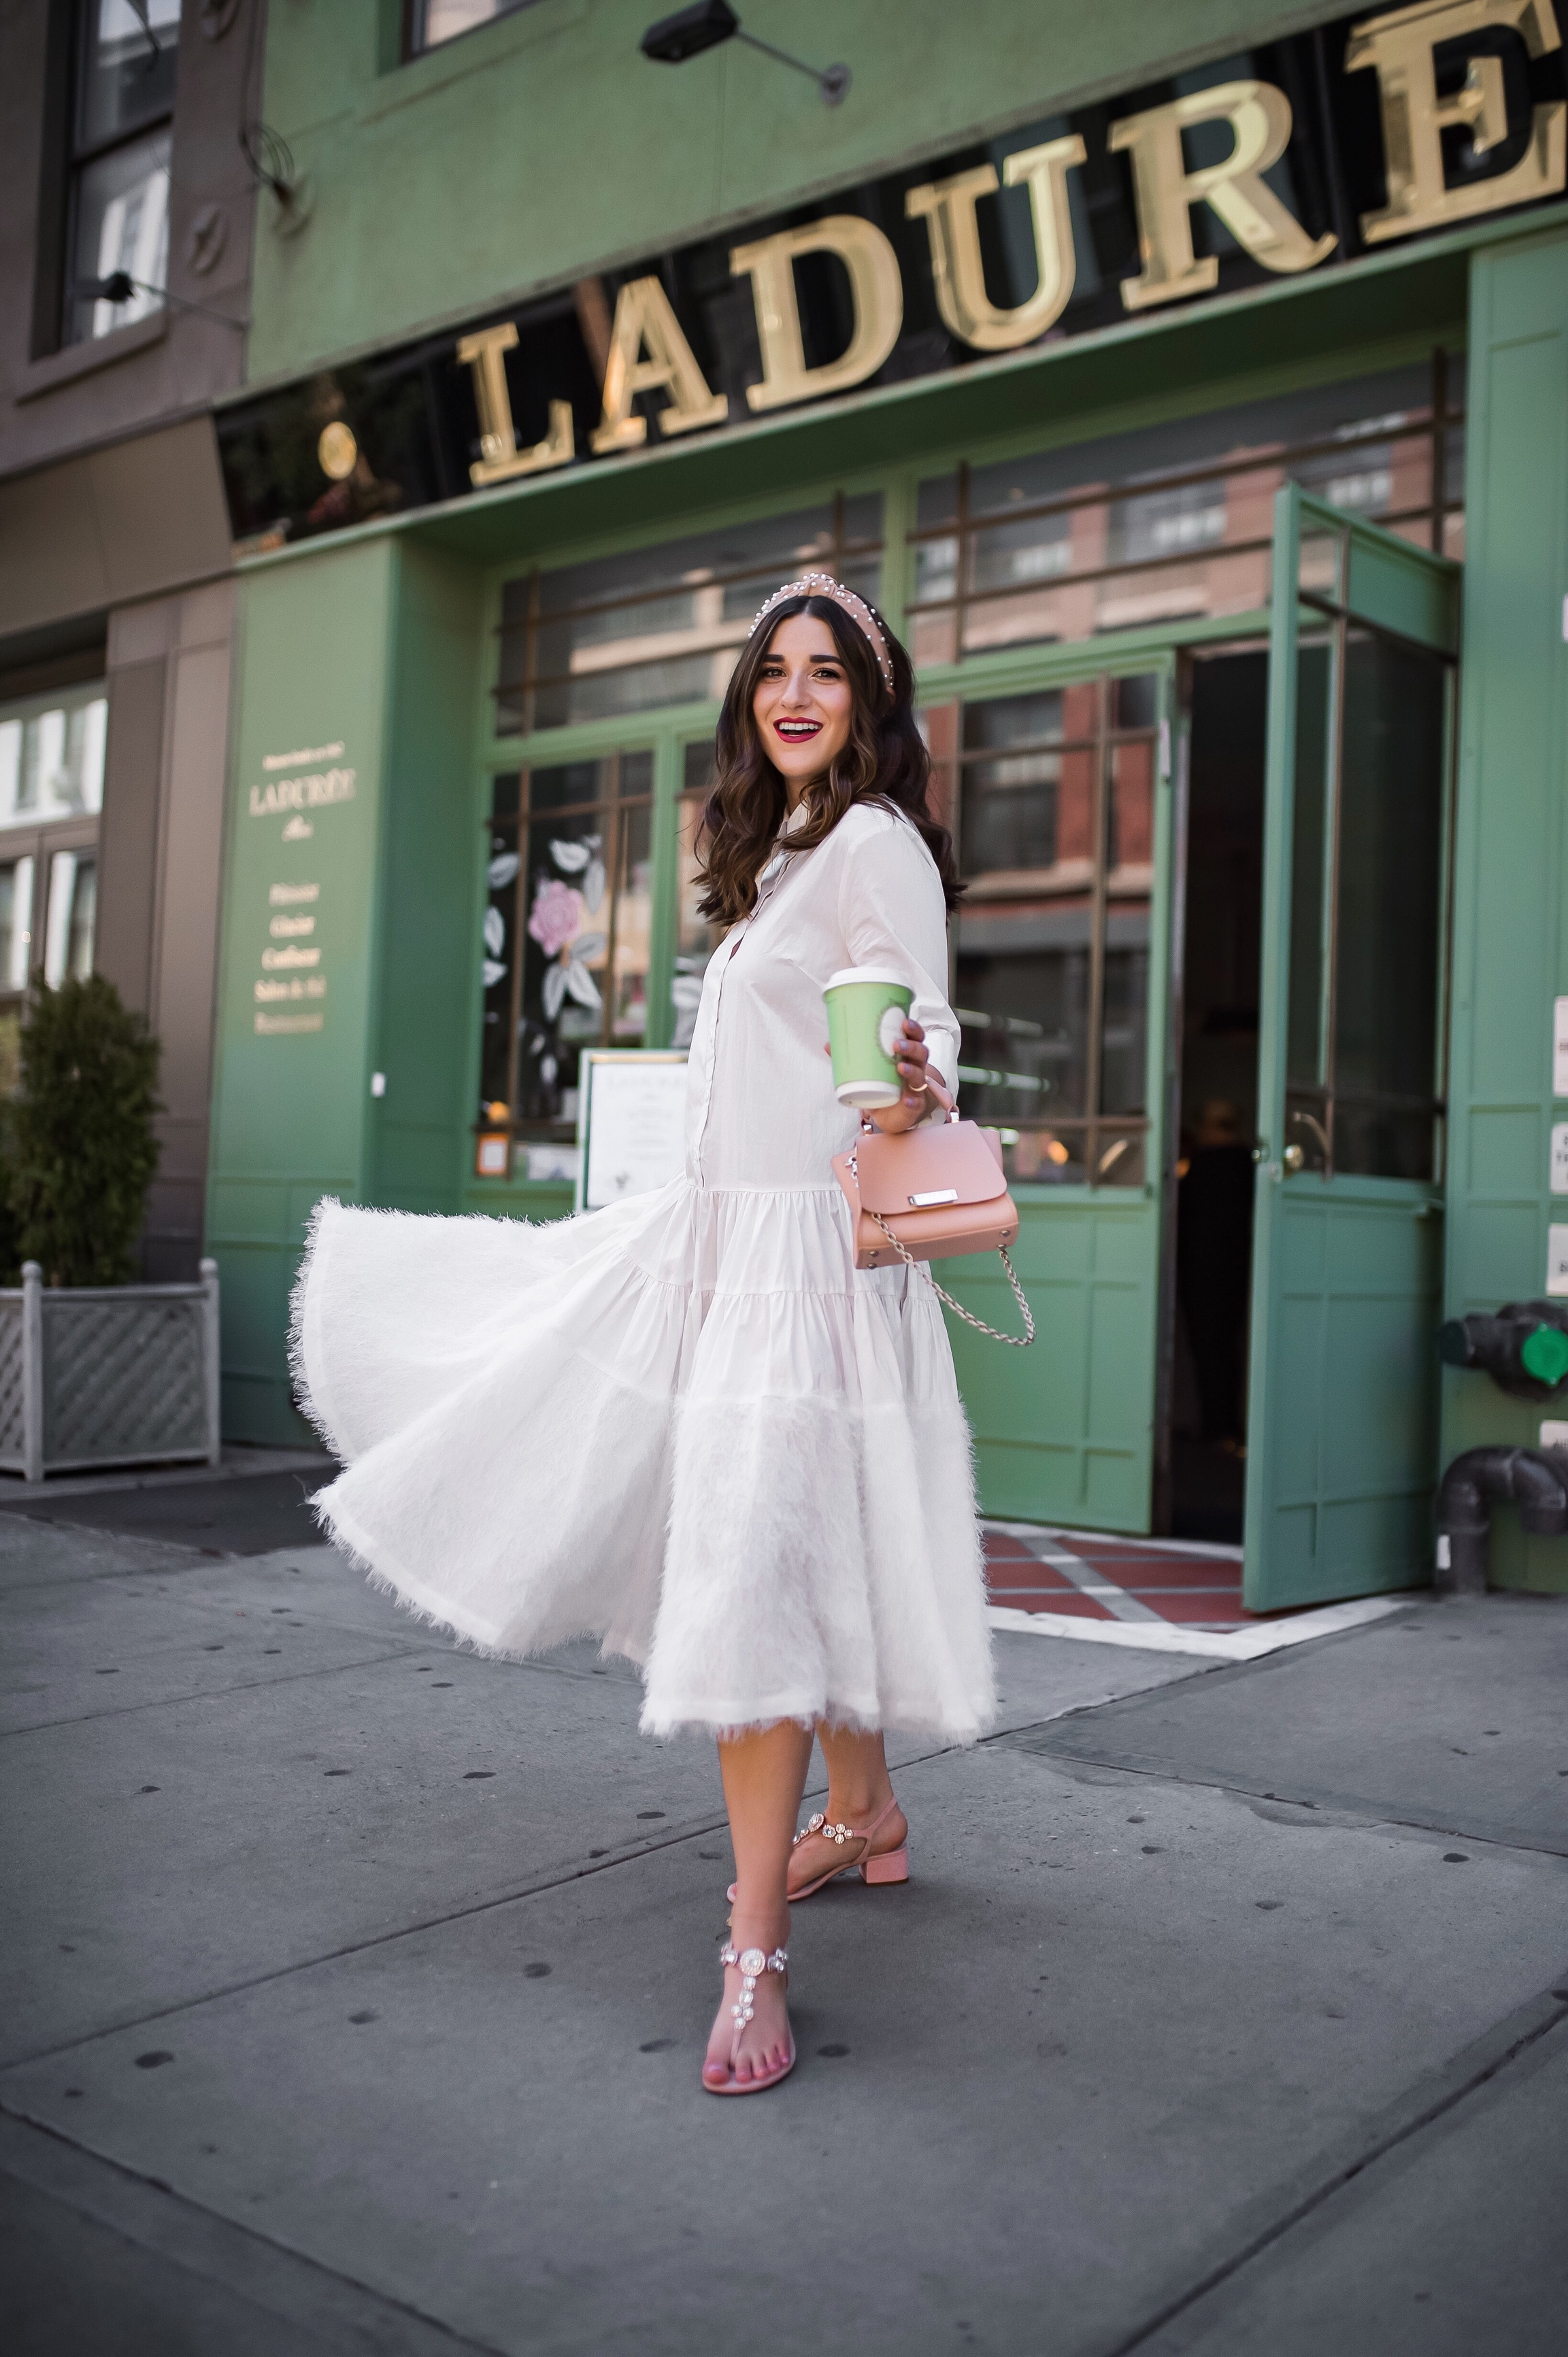 Debunking 8 Common Misconceptions About Fashion Bloggers White Midi Dress Pink Accessories Esther Santer Fashion Blog NYC Street Style Blogger Outfit OOTD Trendy Shopping Girl Headband How To Wear Pink Sandals Jeweled Zac Posen Bag Photoshoot La Duree.JPG